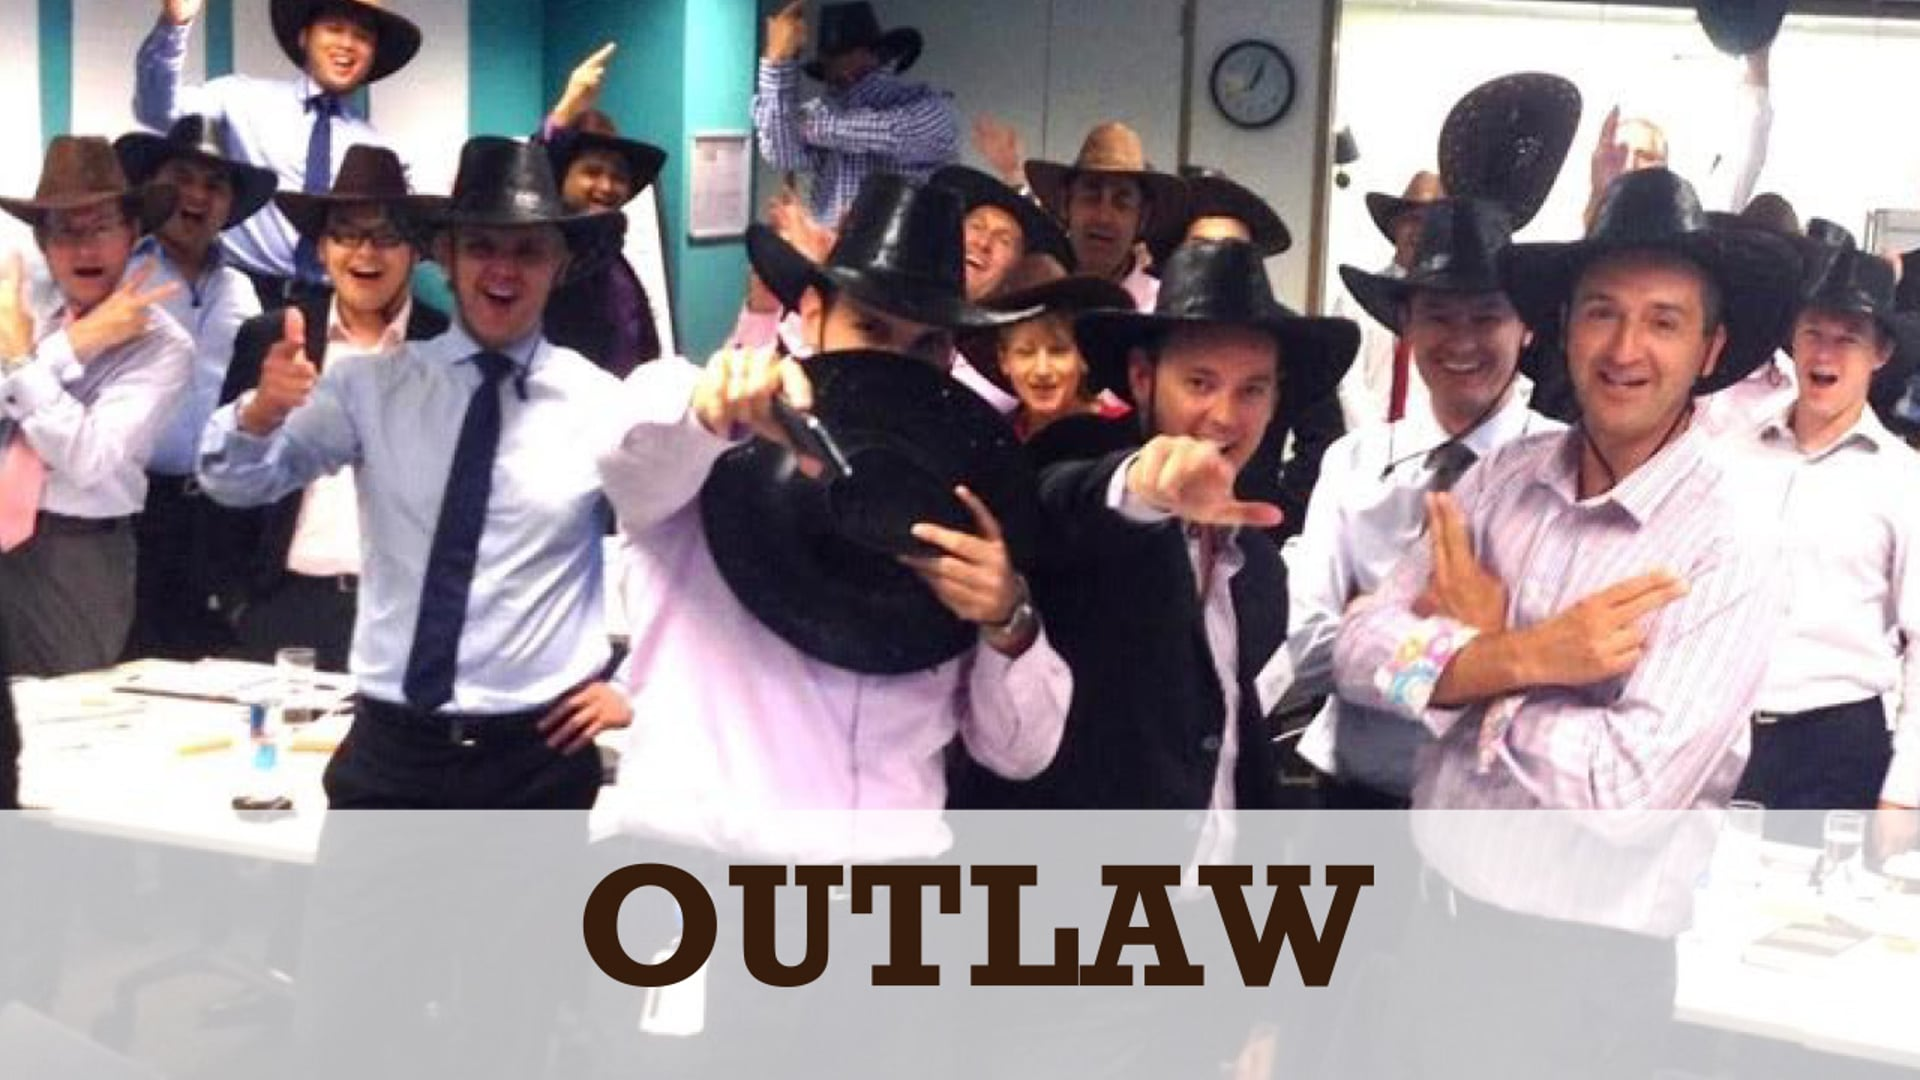 OUTLAW: Fight for Your Customers